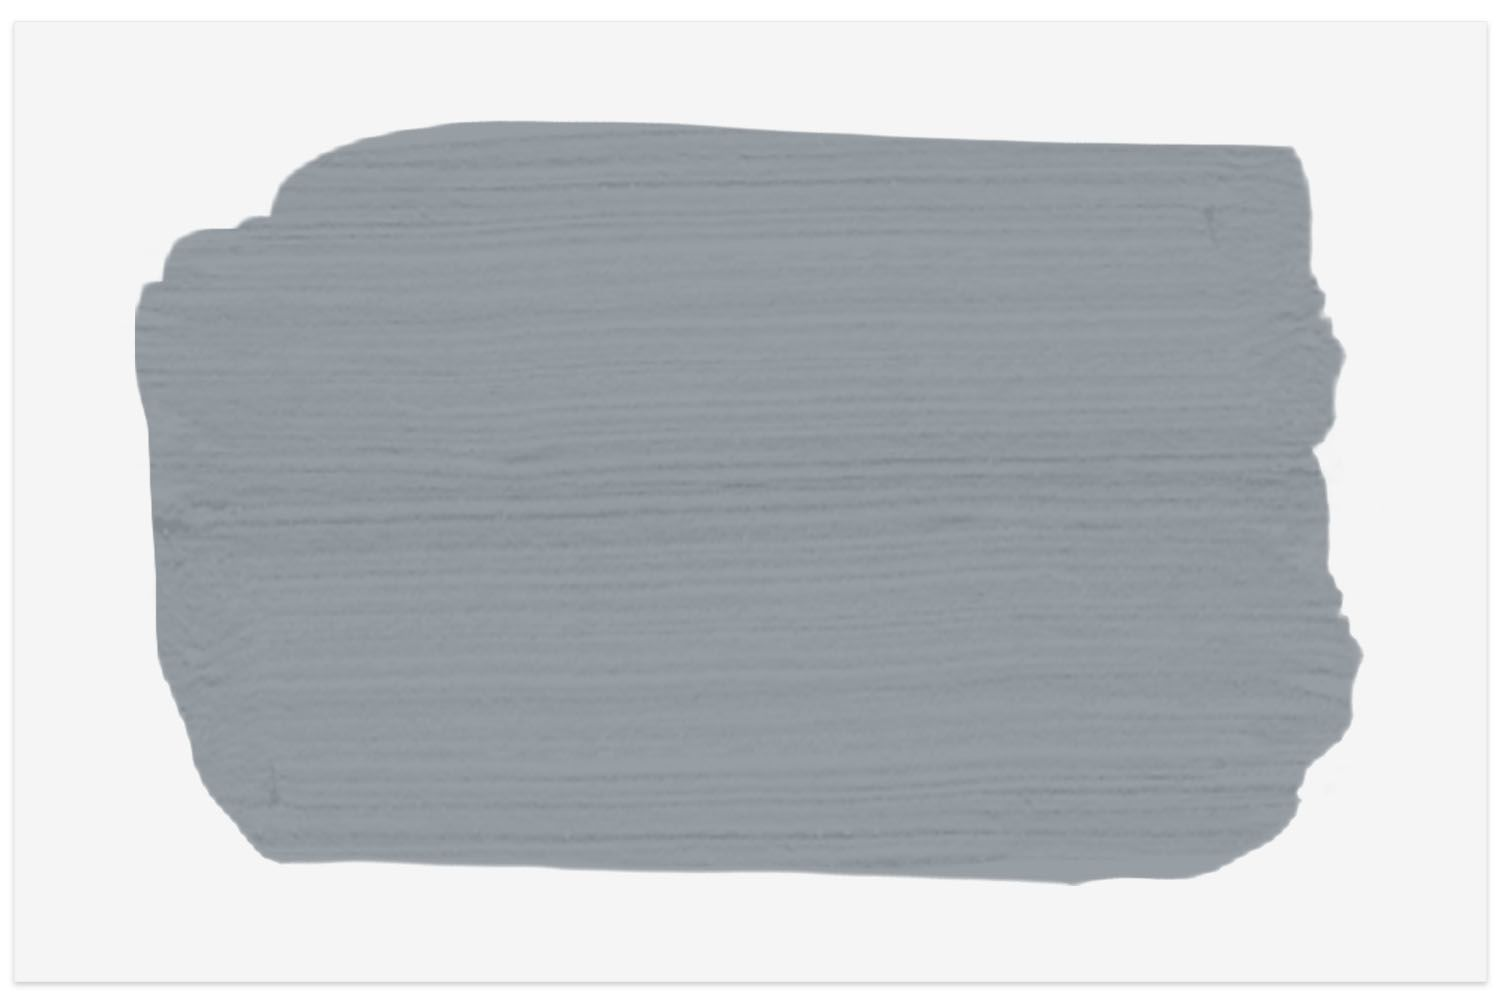 Sherwin Williams Let It Rain color swatch